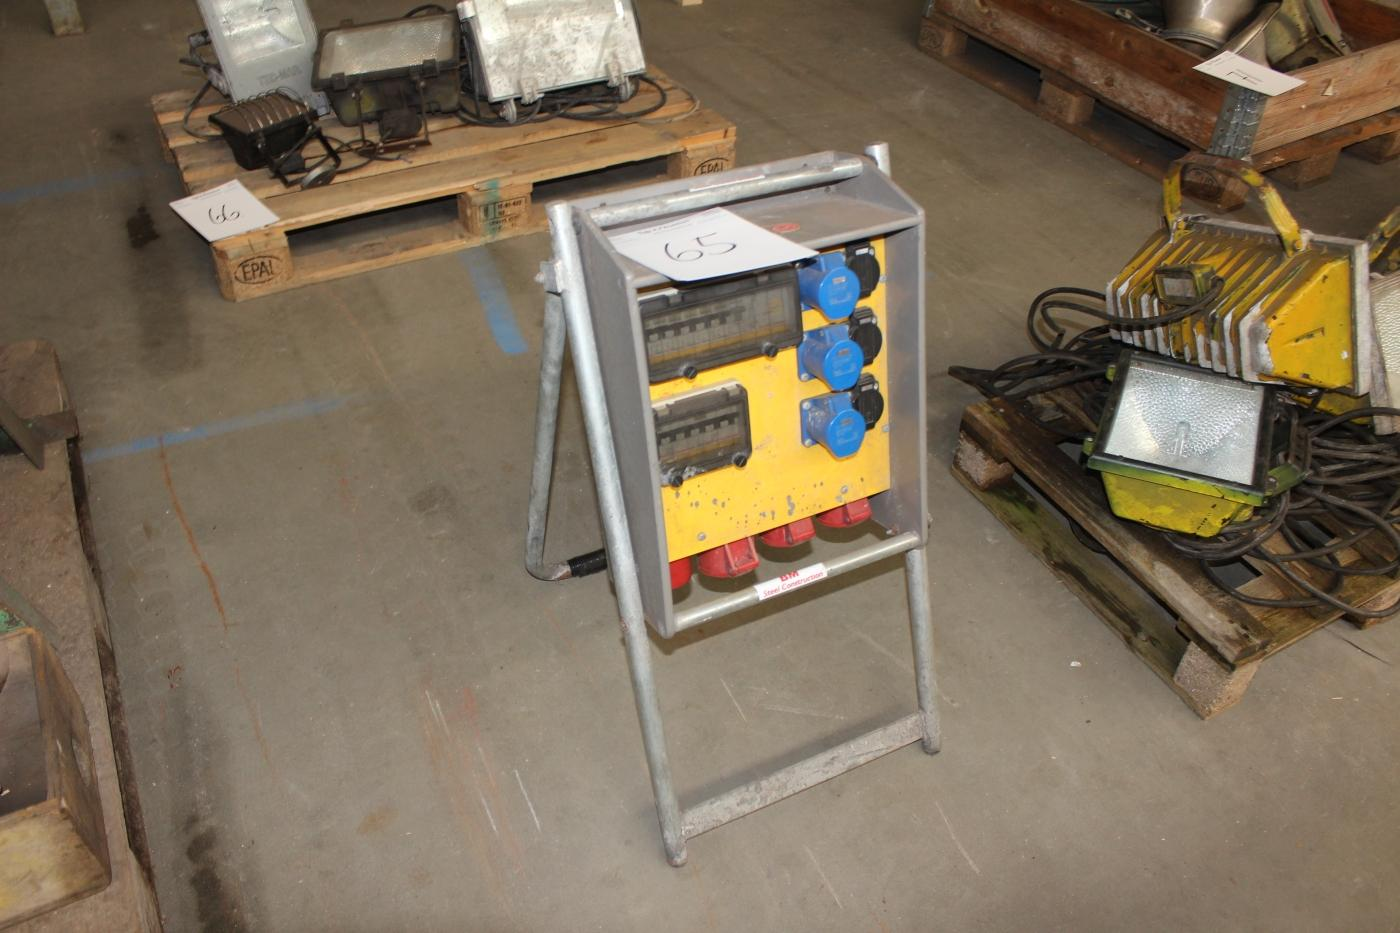 Construction Switchboard With Fuse Box Kj Auktion Machine Auctions